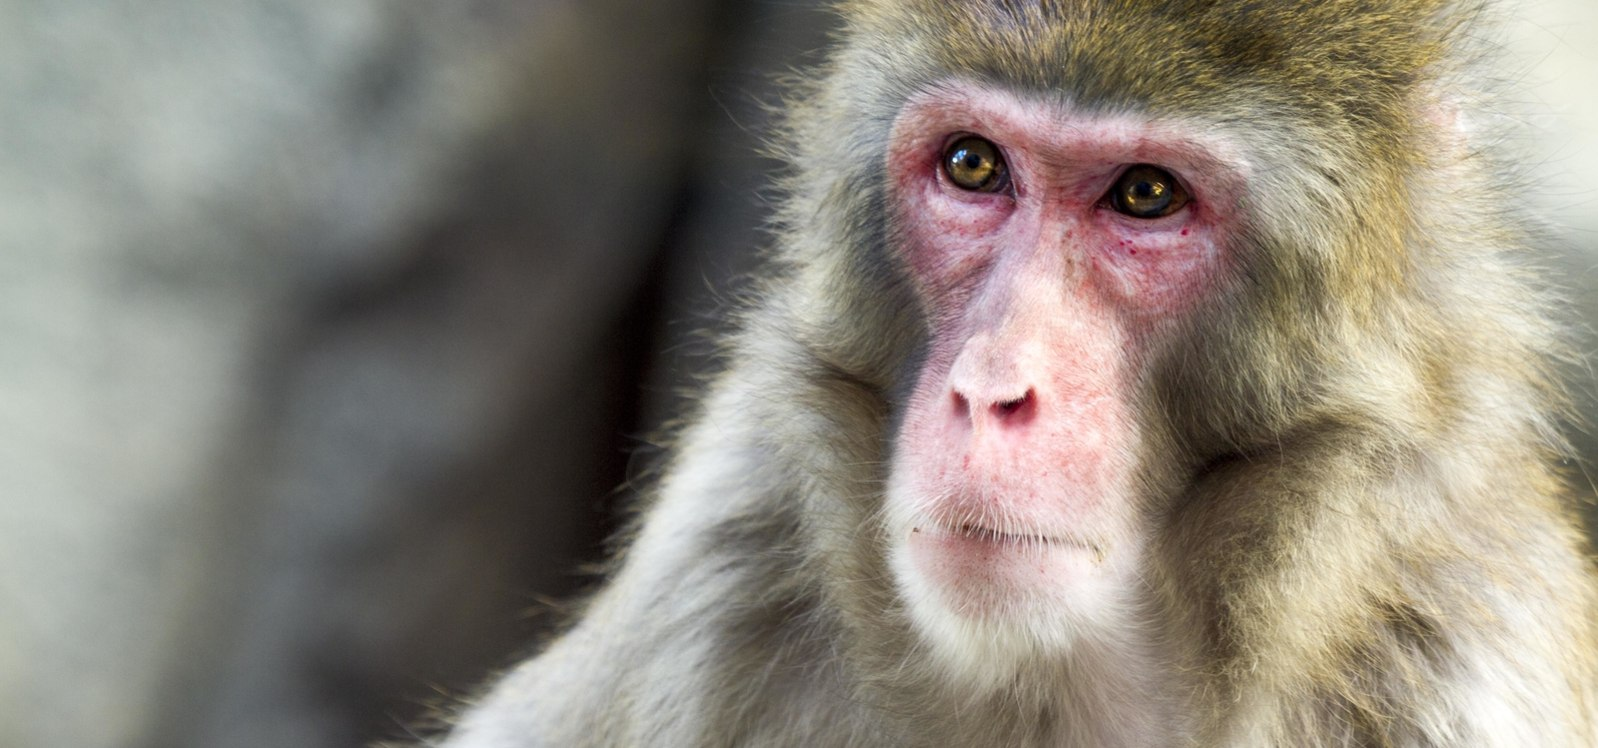 Up close to a Snow Monkey